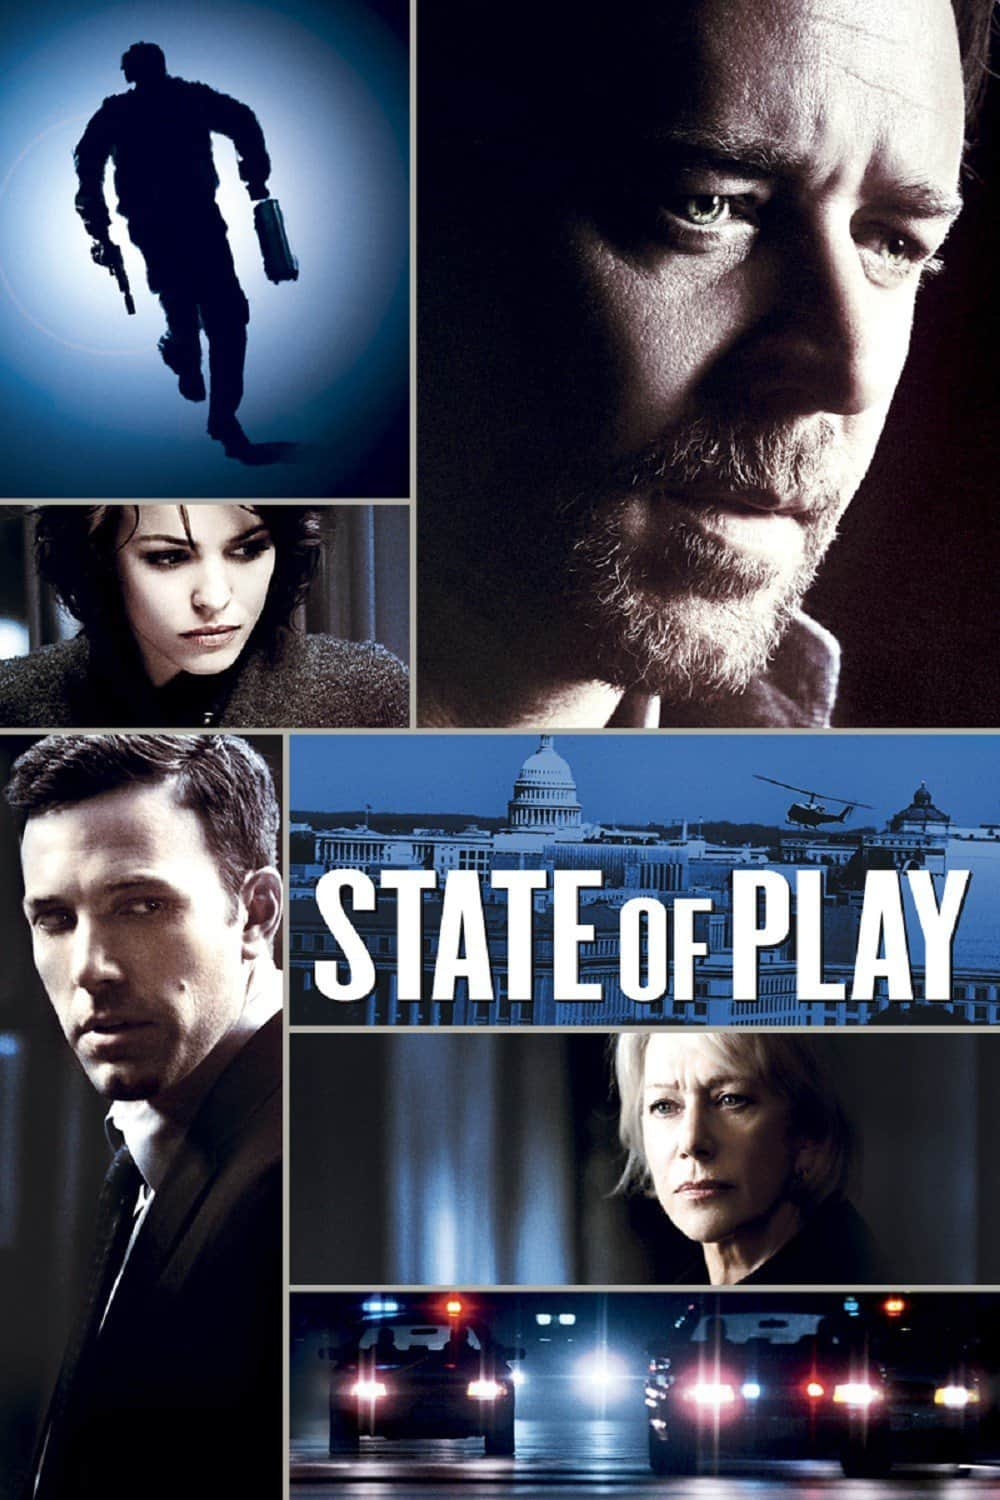 State of Play, 2009